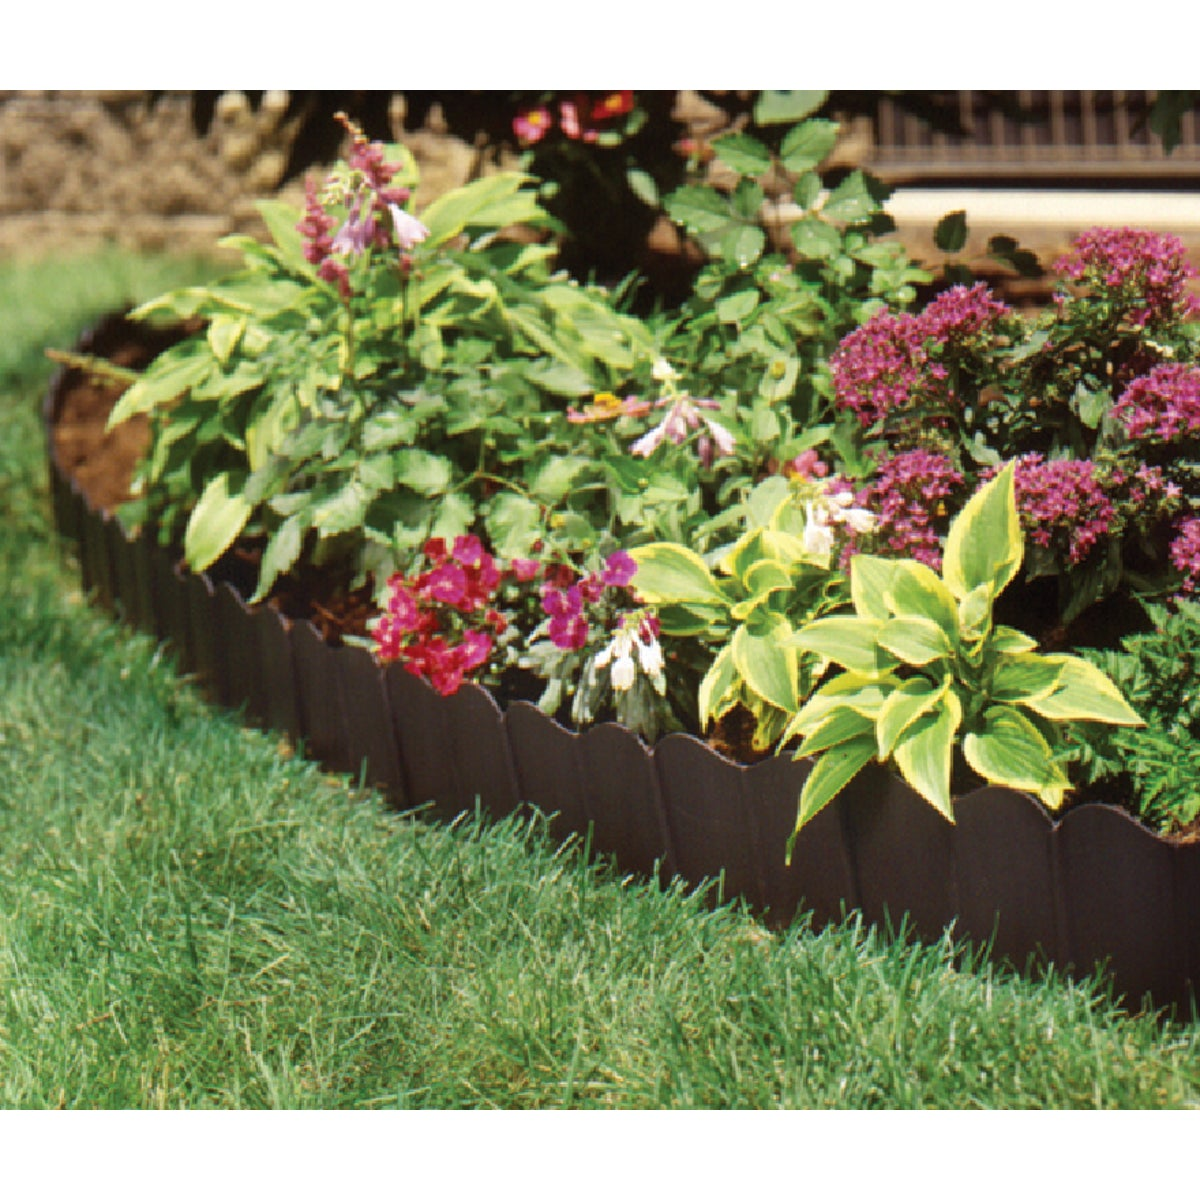 20' POUND-IN EDGING - QE20 by Suncast Corporation